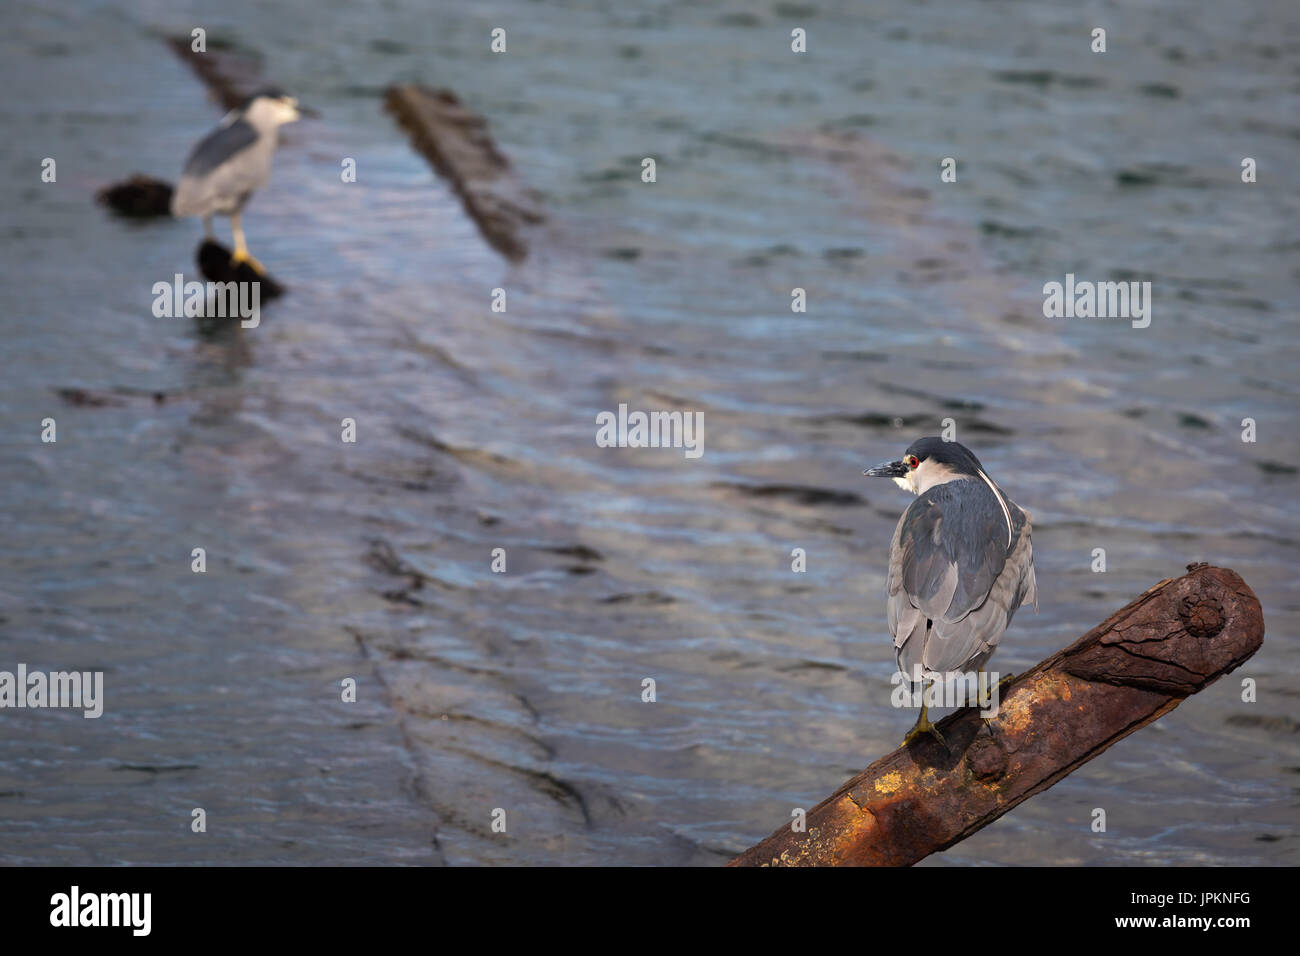 Black-crowned nicht heron on the shore near Goose Green - Stock Image